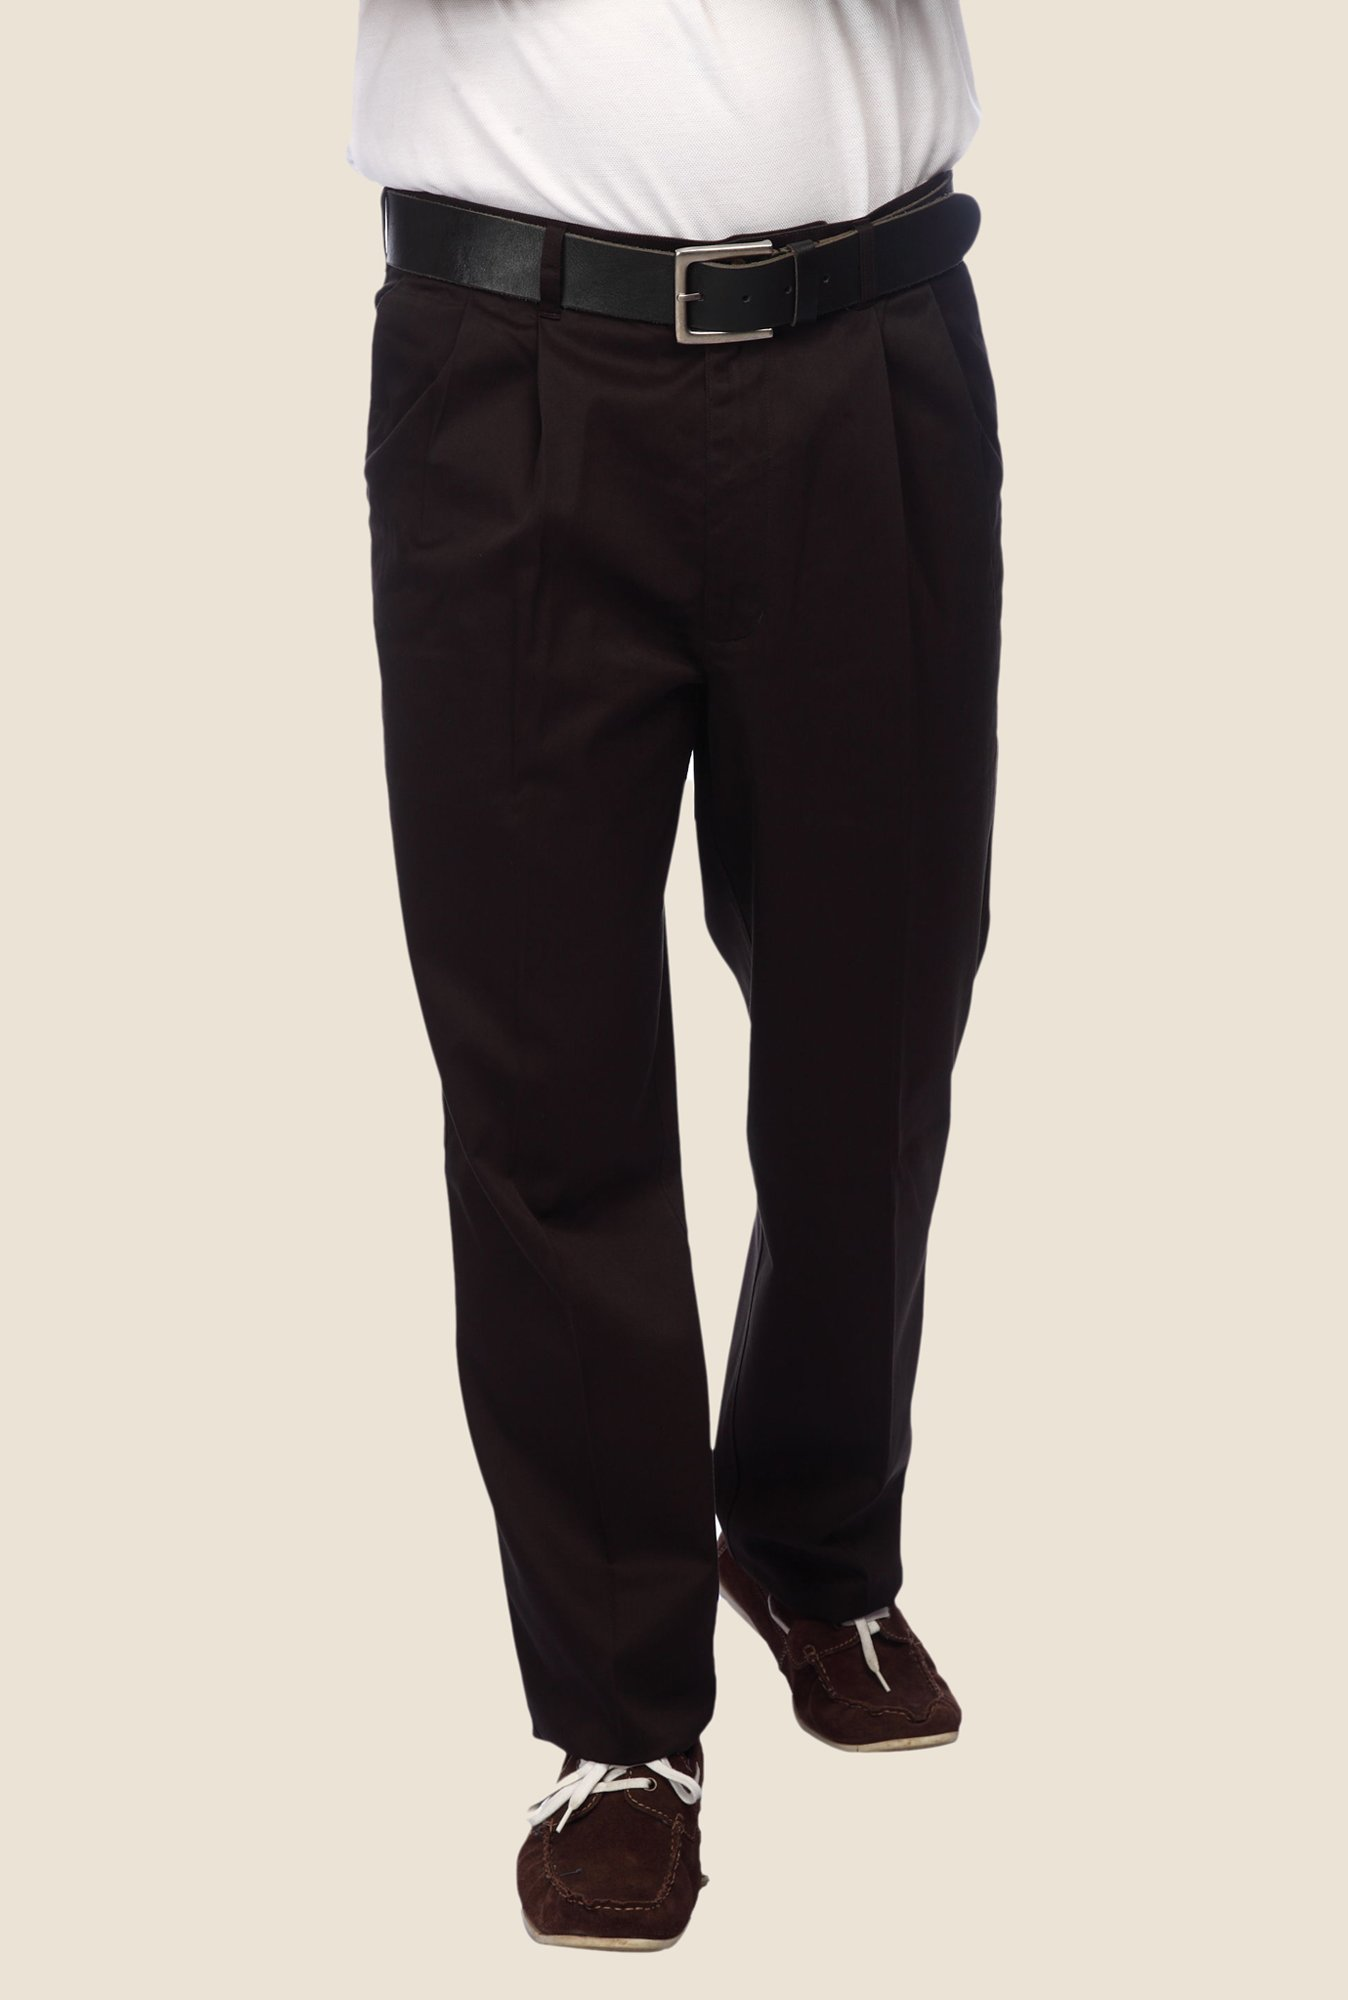 ColorPlus Dark Brown Solid Trouser